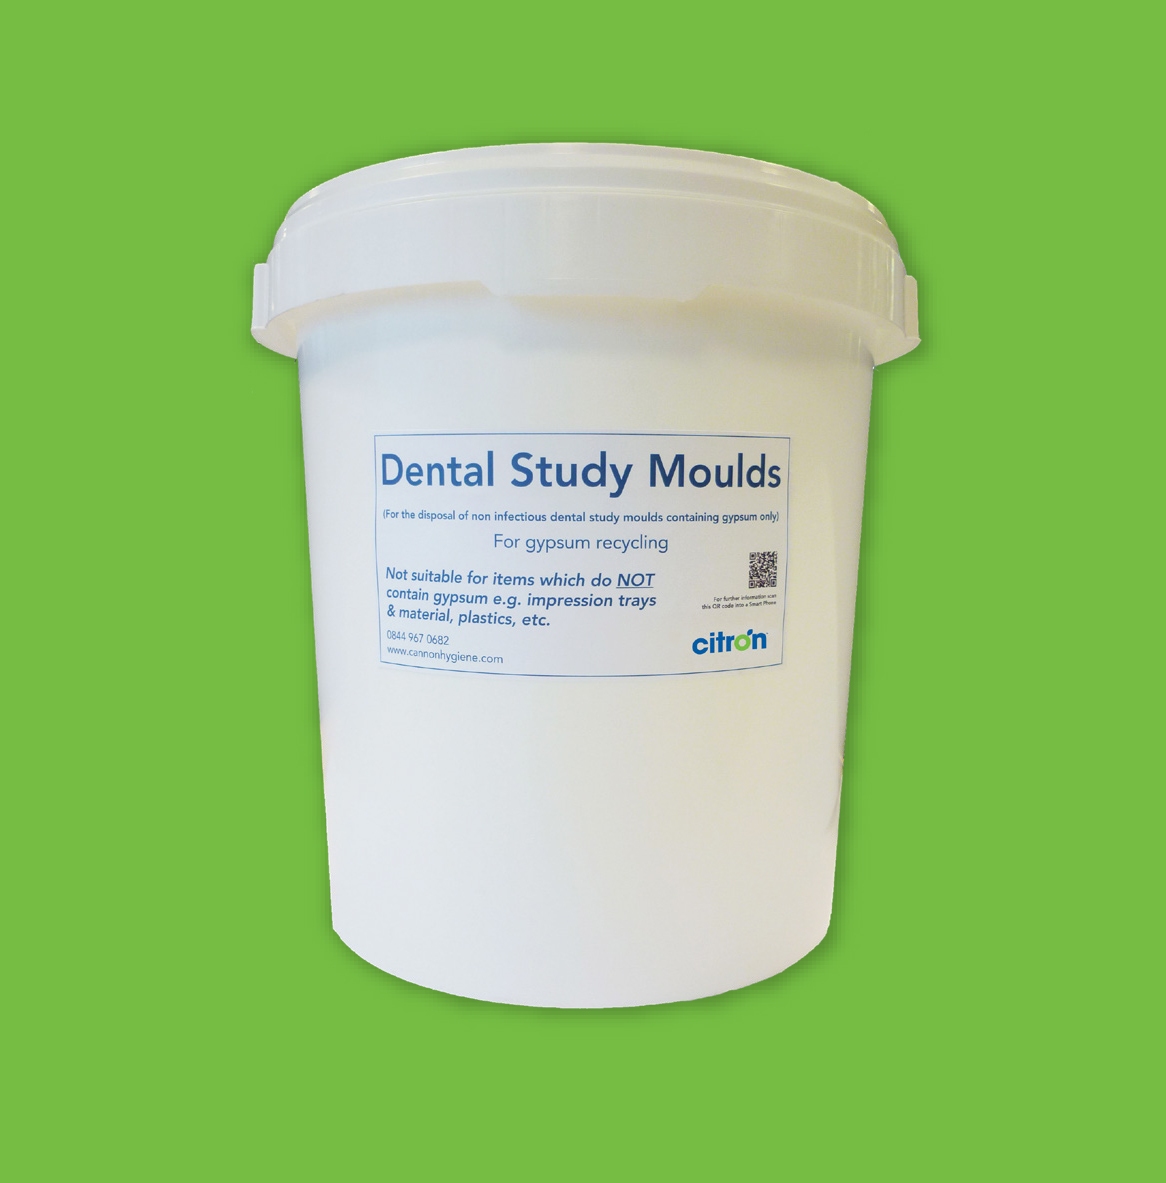 Dental Study Moulds - dental services